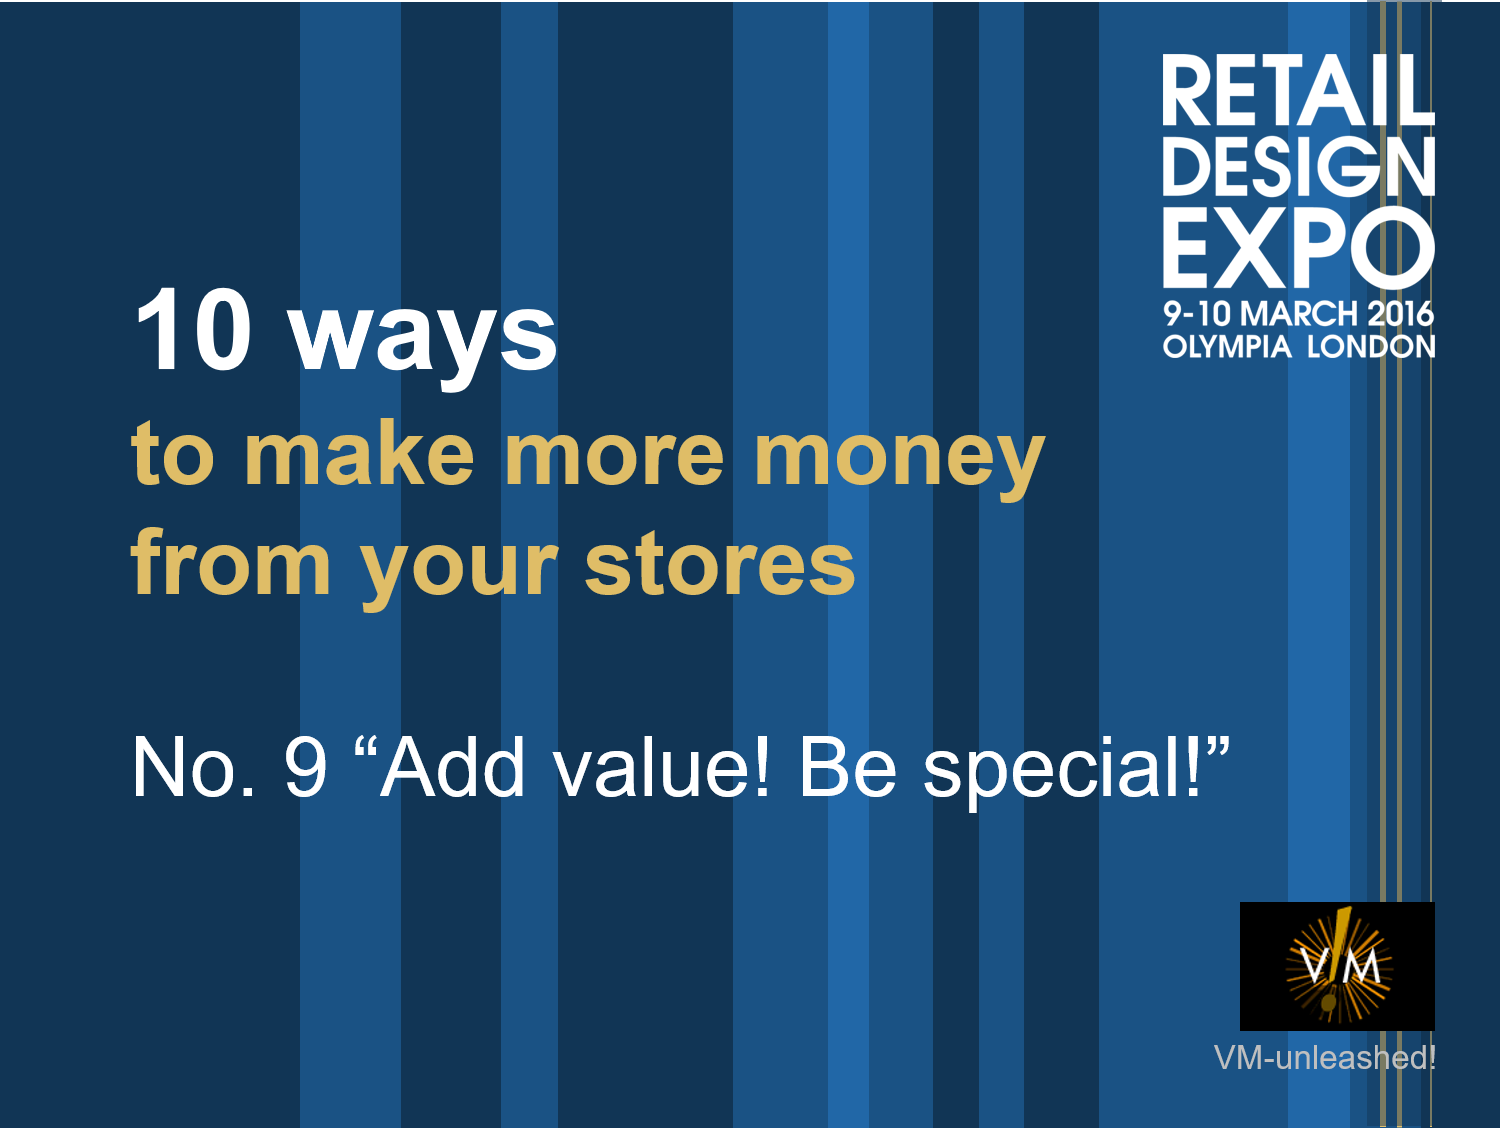 retaildesignexpo-add-value-be-special.png